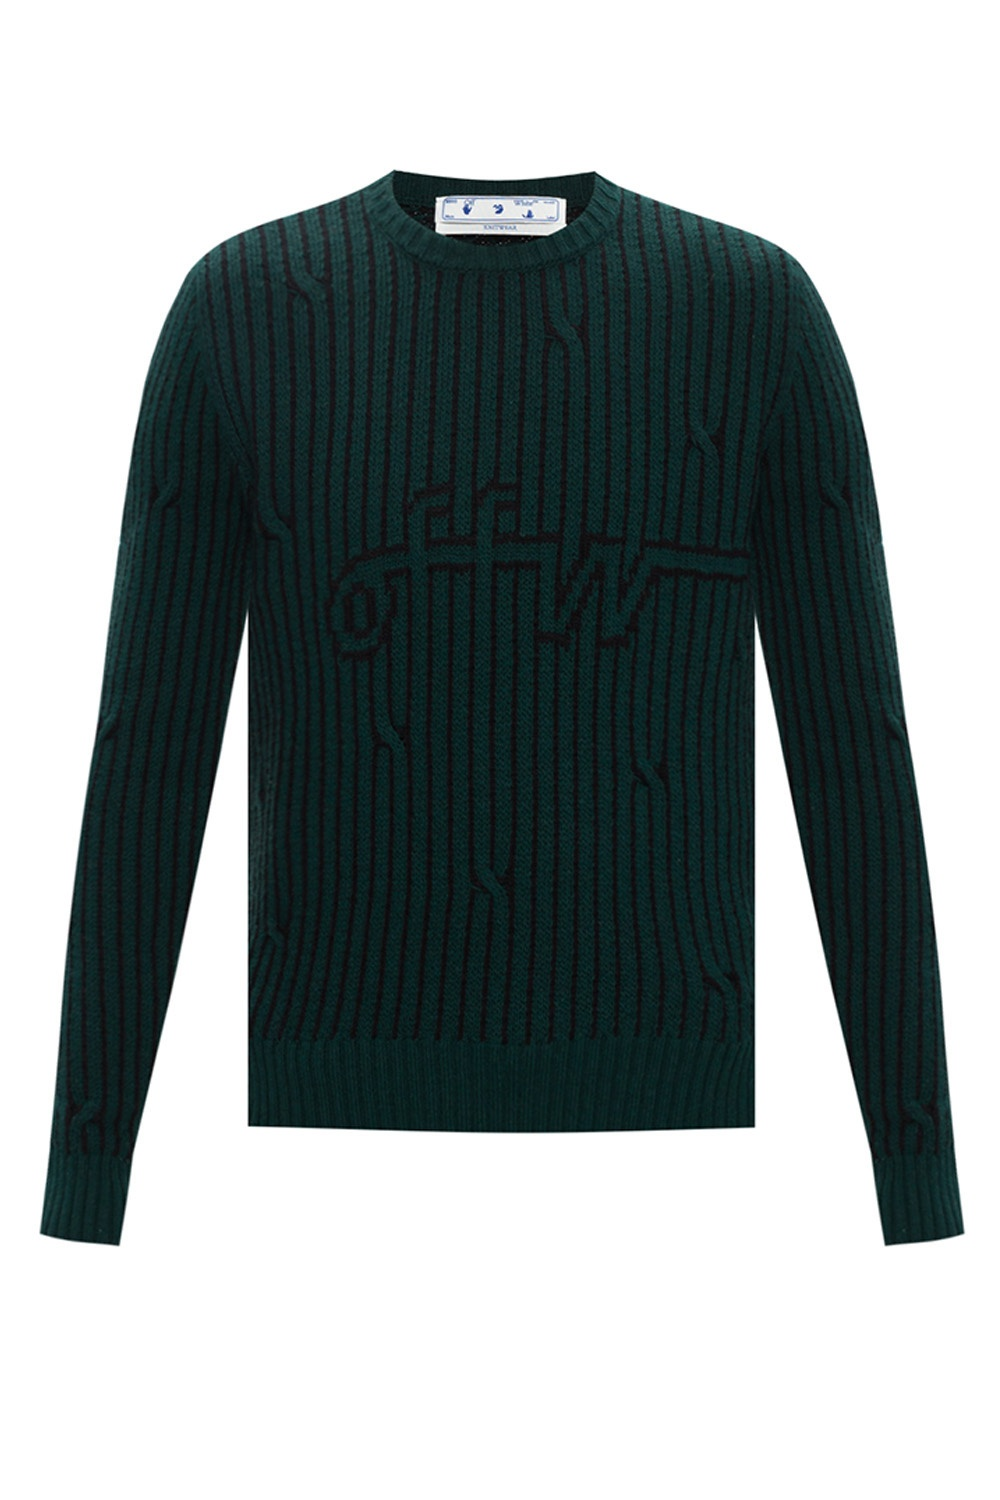 Off-White Wool sweater